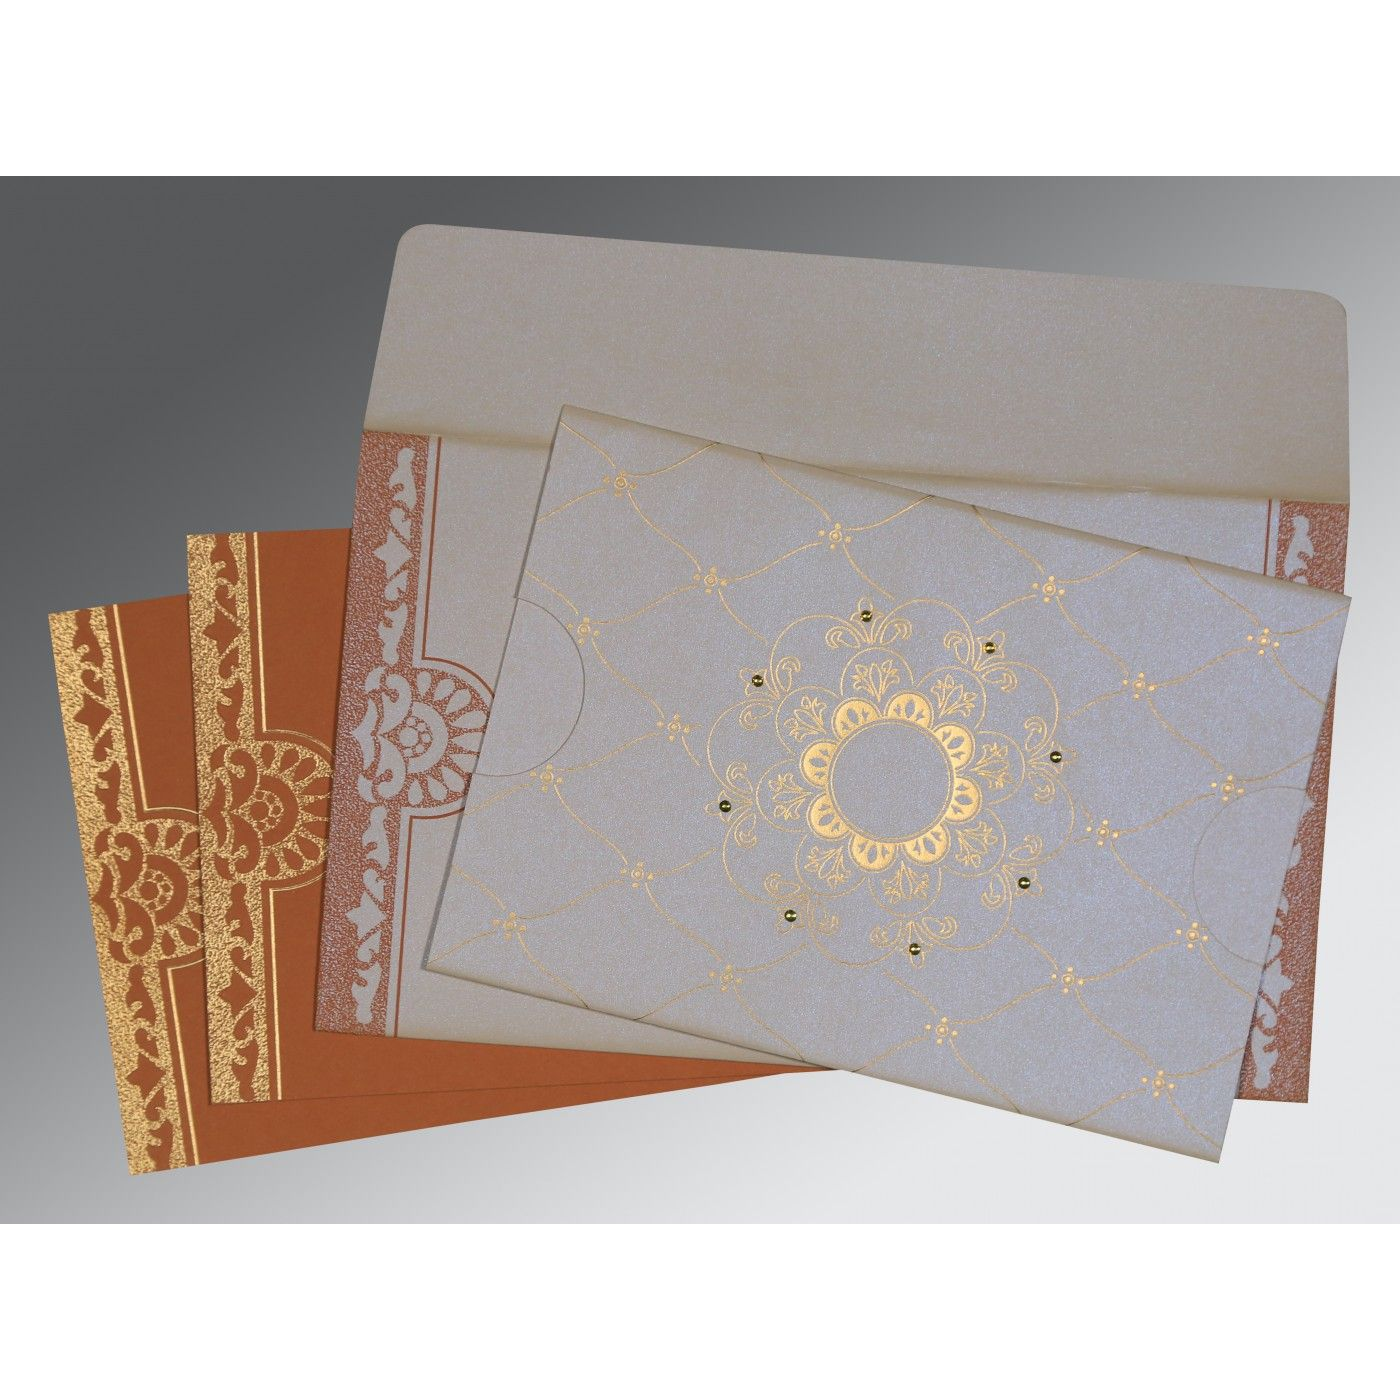 OFF-WHITE SHIMMERY FLORAL THEMED - SCREEN PRINTED WEDDING CARD : CSO-8227L - IndianWeddingCards